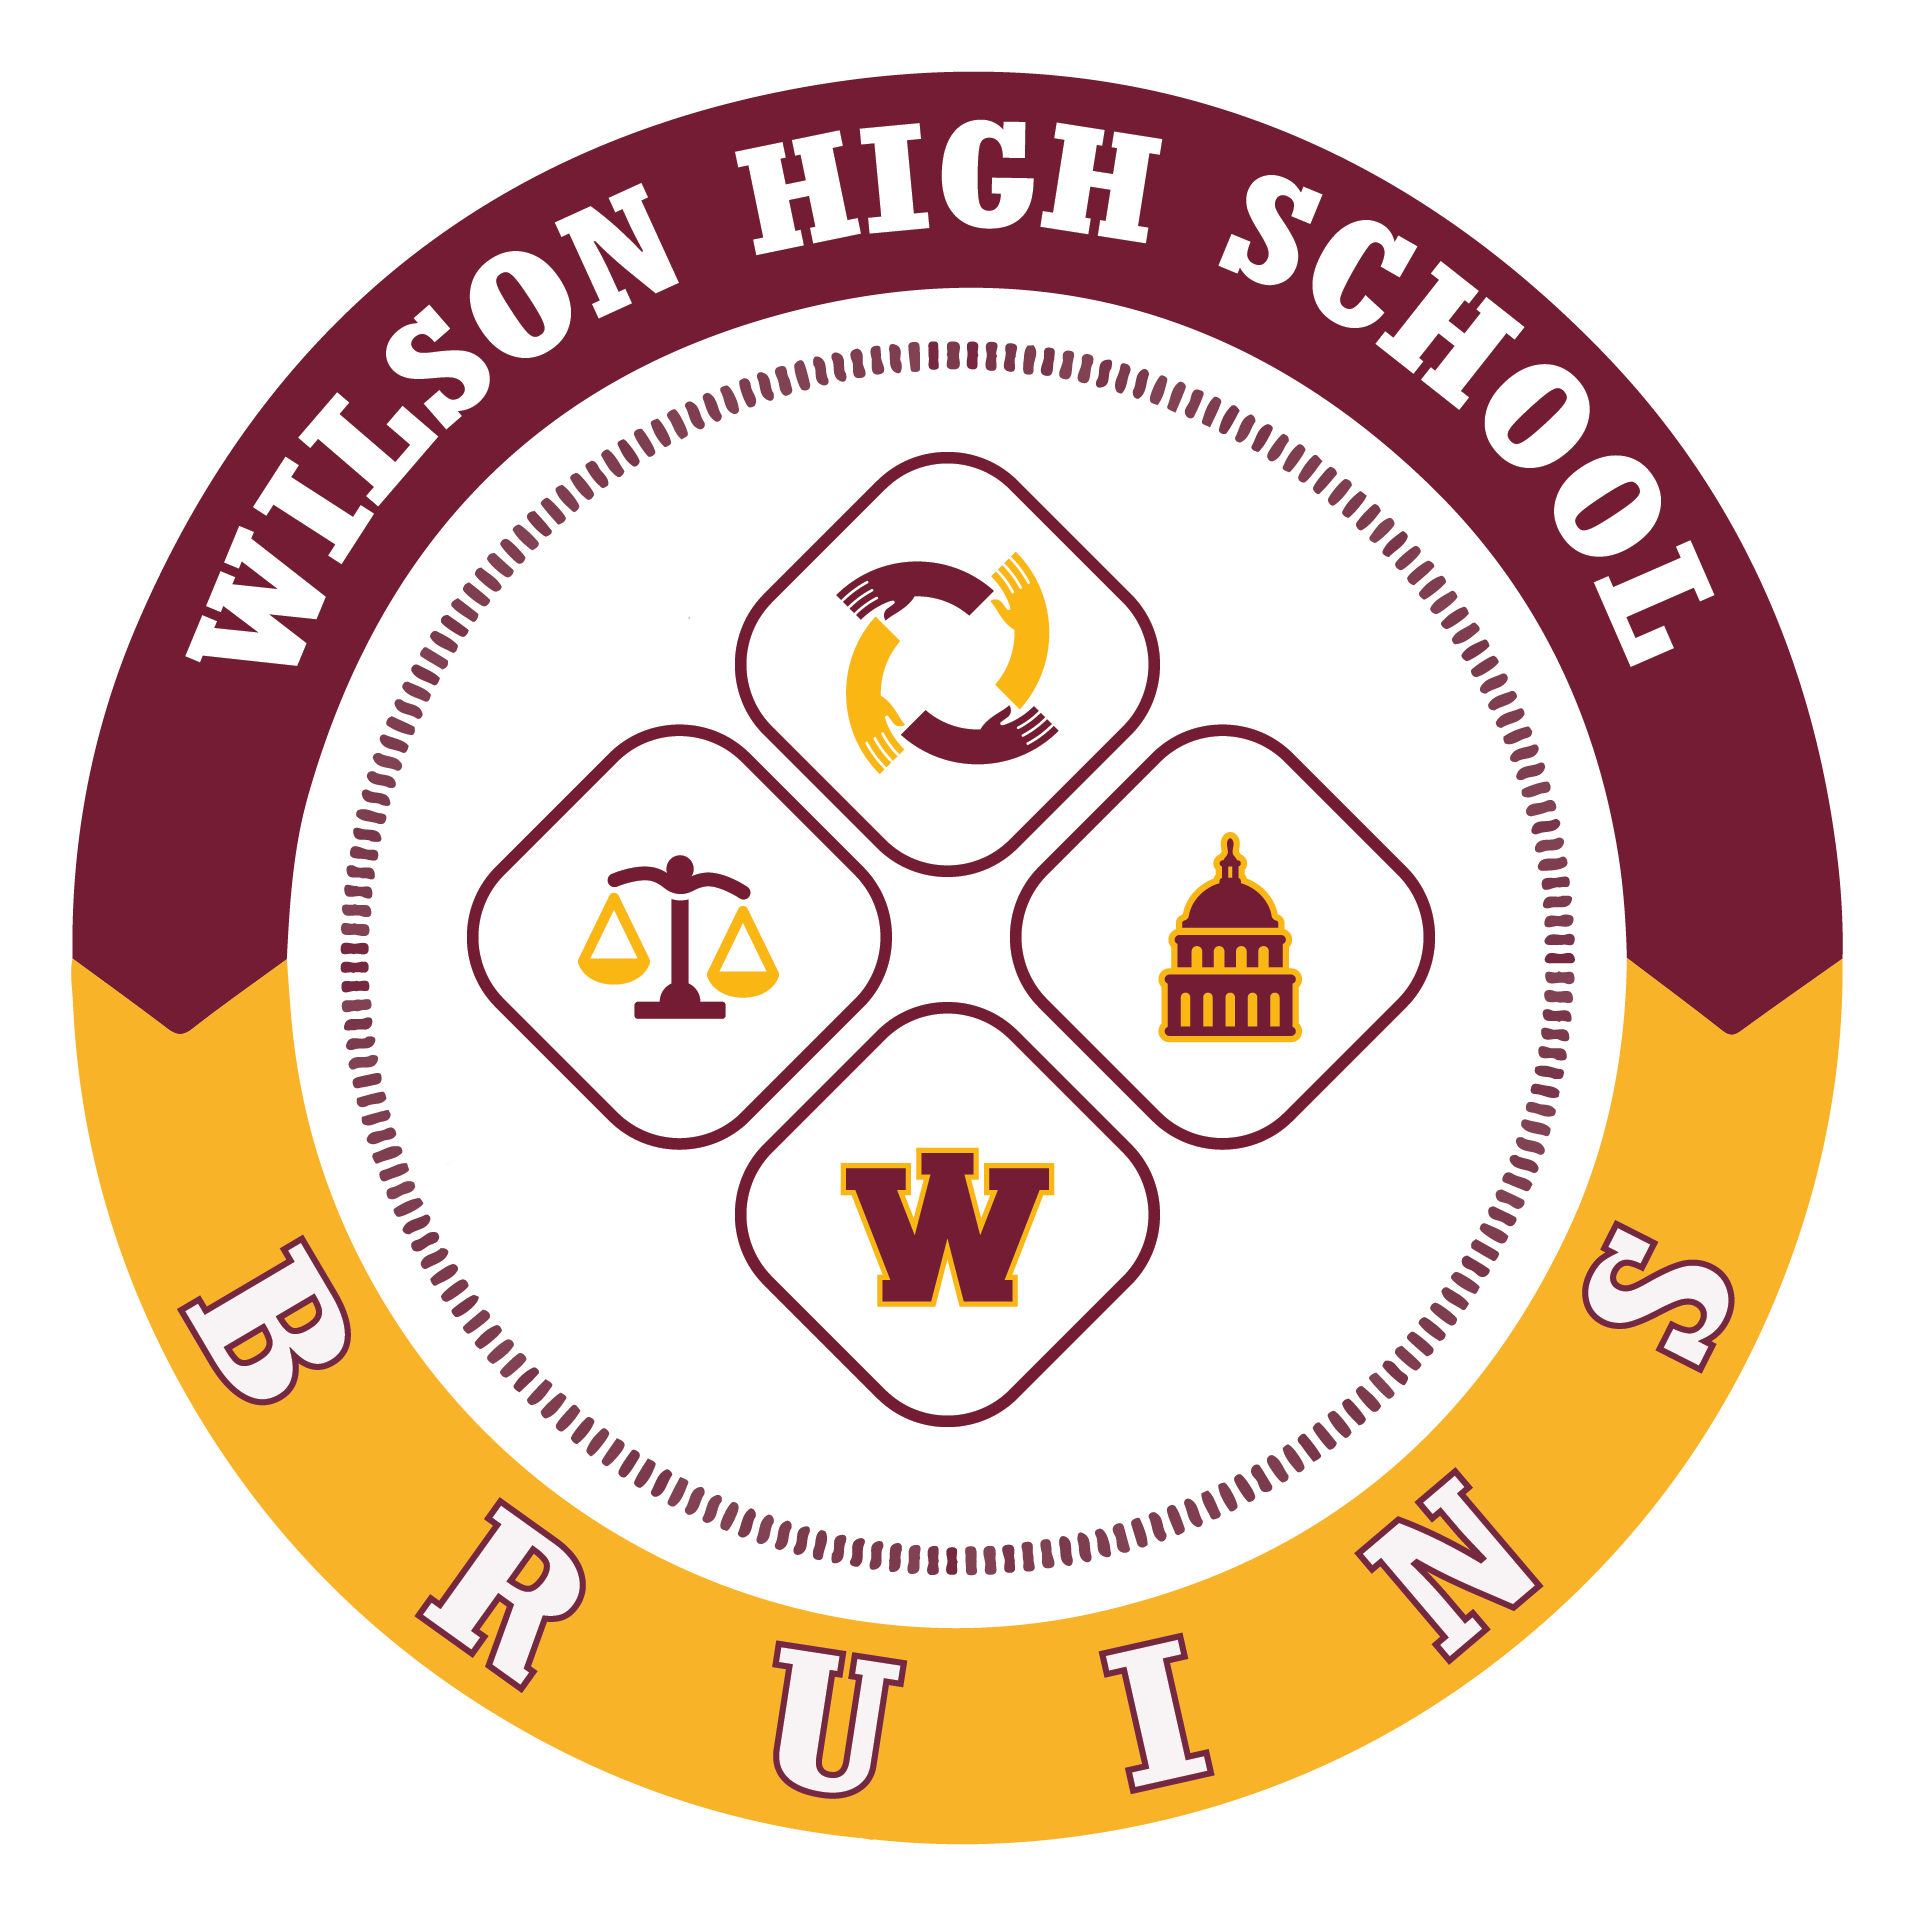 public service bruins wilson high school